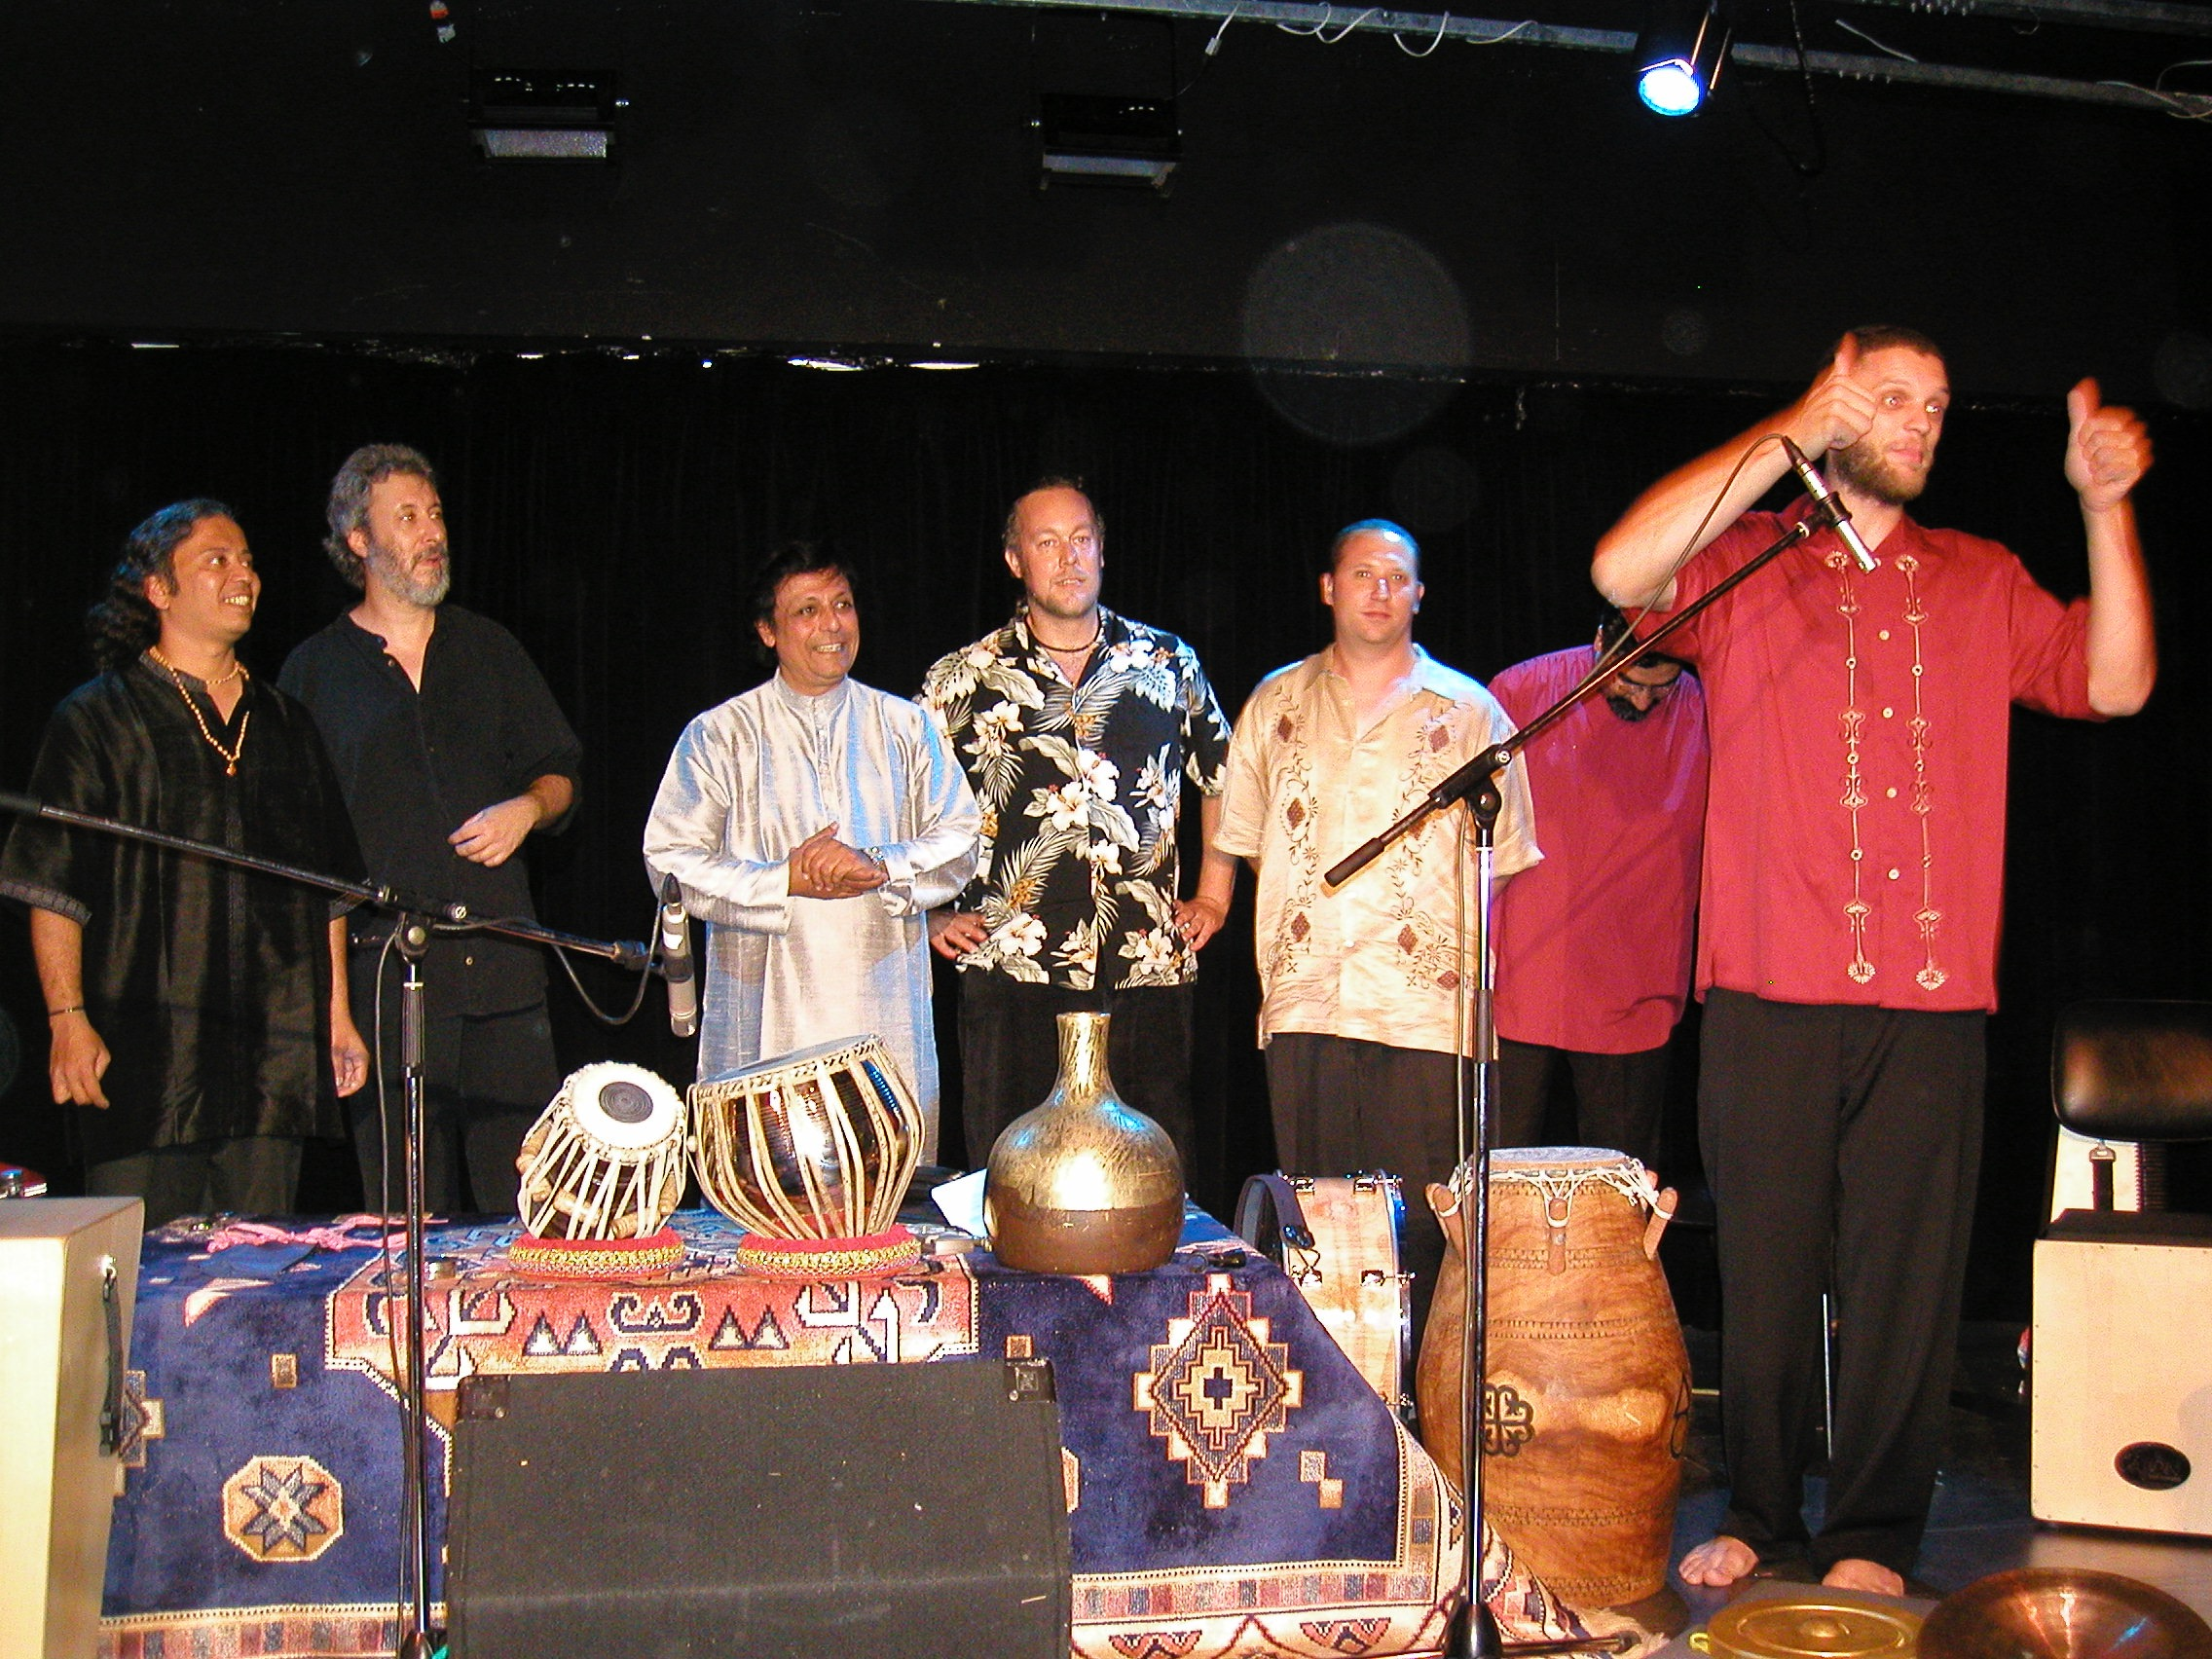 End-of-the-concert.-Campinas-Brazil-2004-left-to-right-Poovalur-Sriji-Adam-Rudolph-Pandit-Swapan-Chaudhuri-Austin-Wrinkle-Randy-Gloss-Houman.jpg